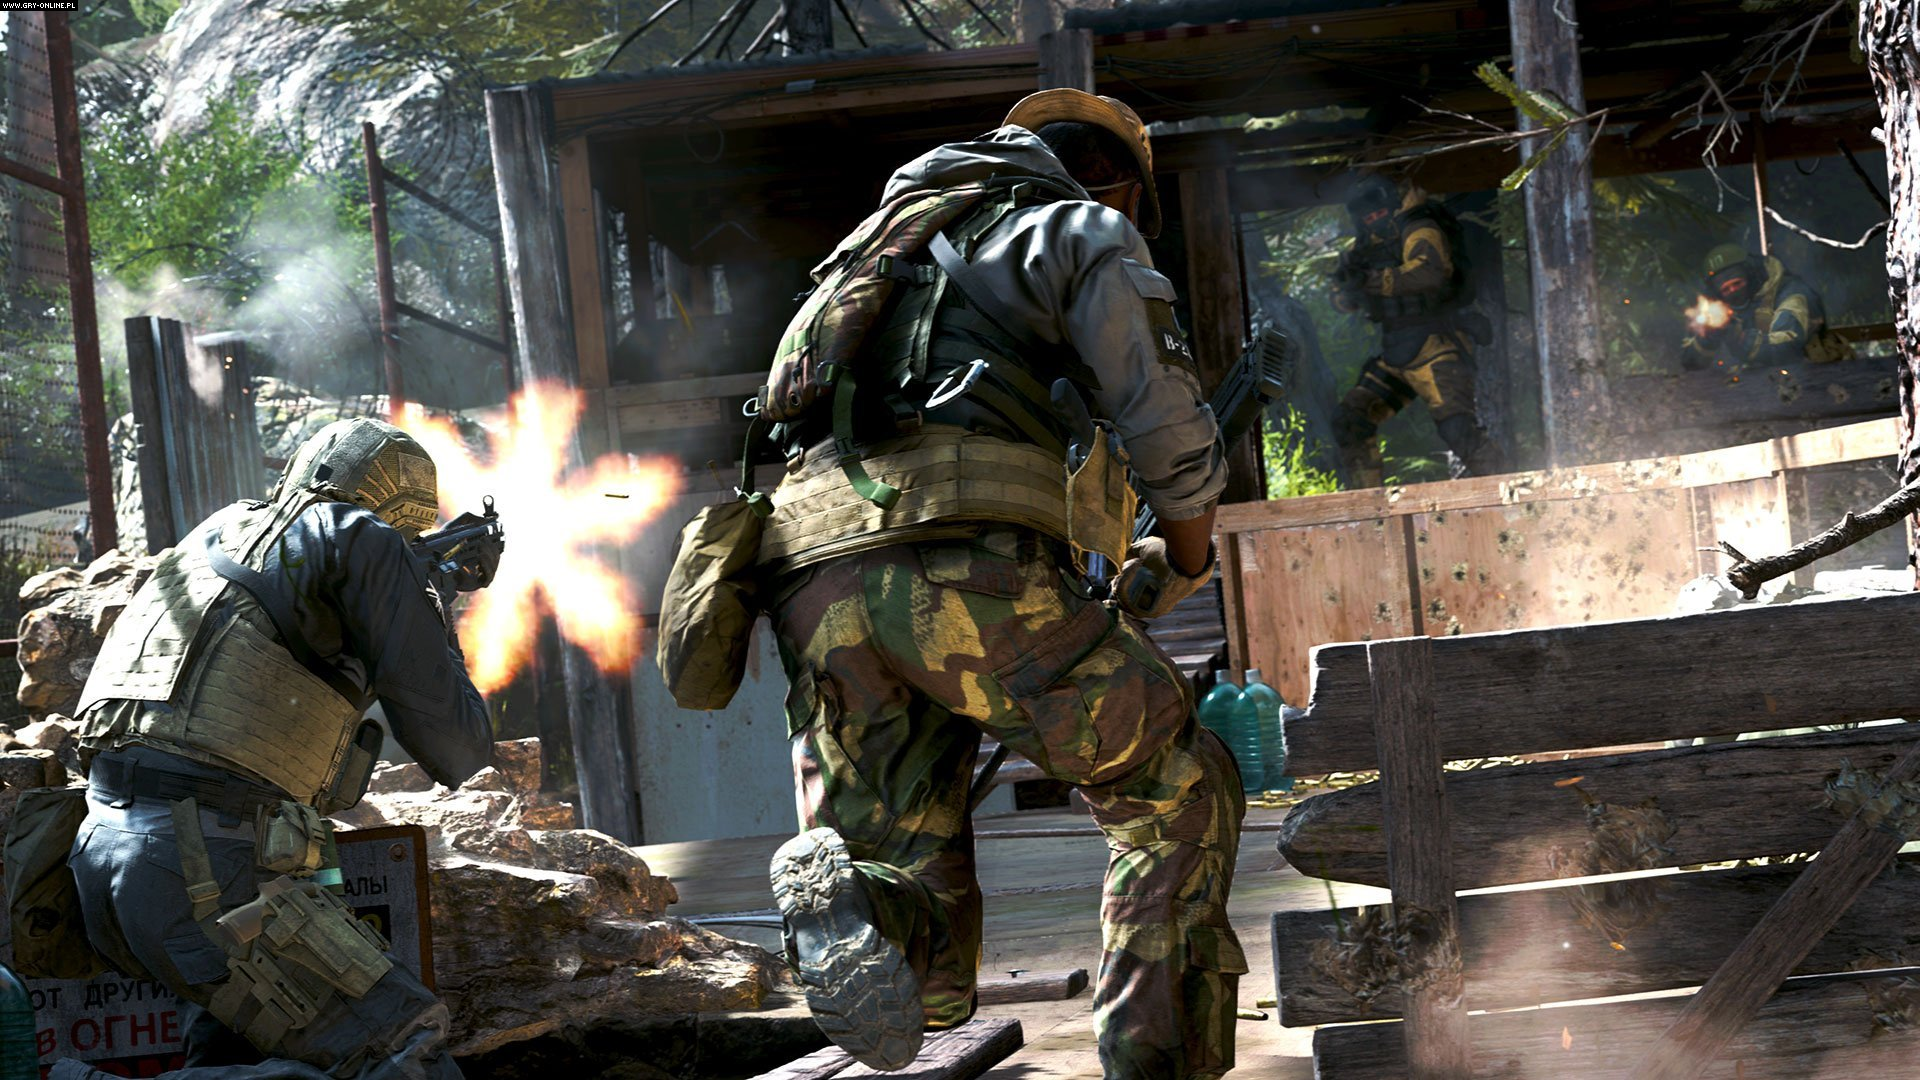 Call of Duty: Modern Warfare PC, PS4, XONE Games Image 38/47, Infinity Ward, Activision Blizzard